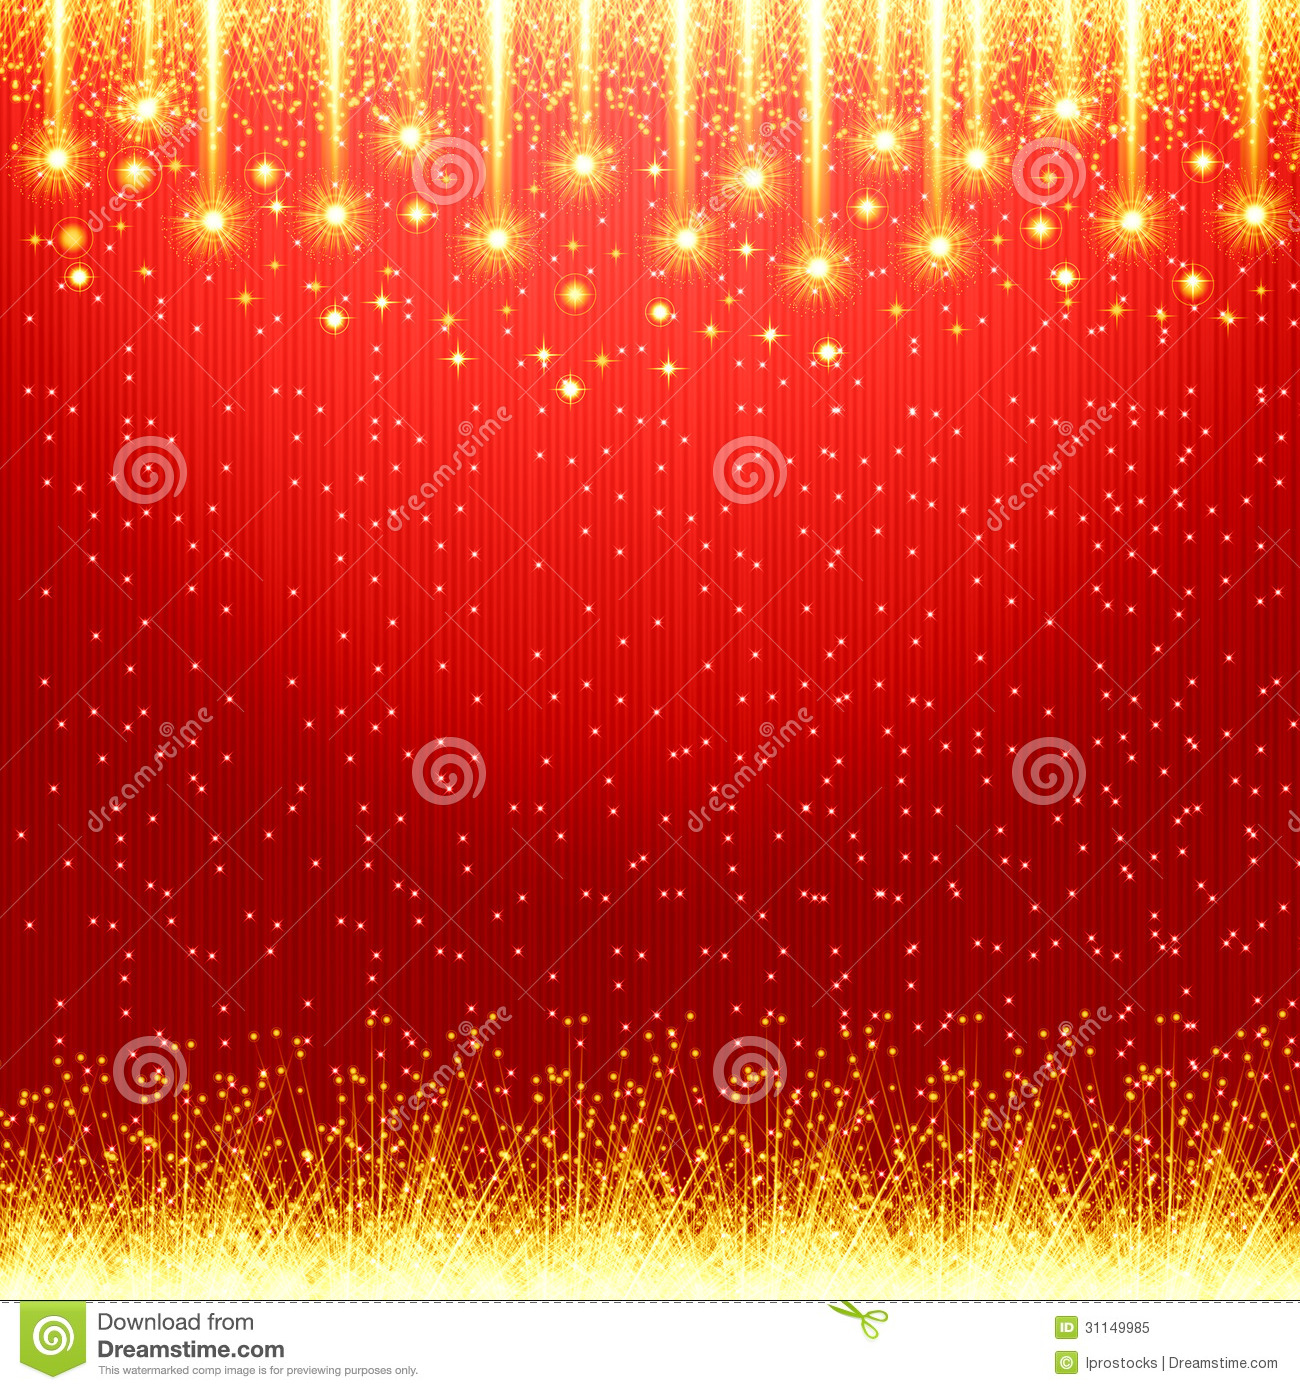 red christmas lights background - photo #17